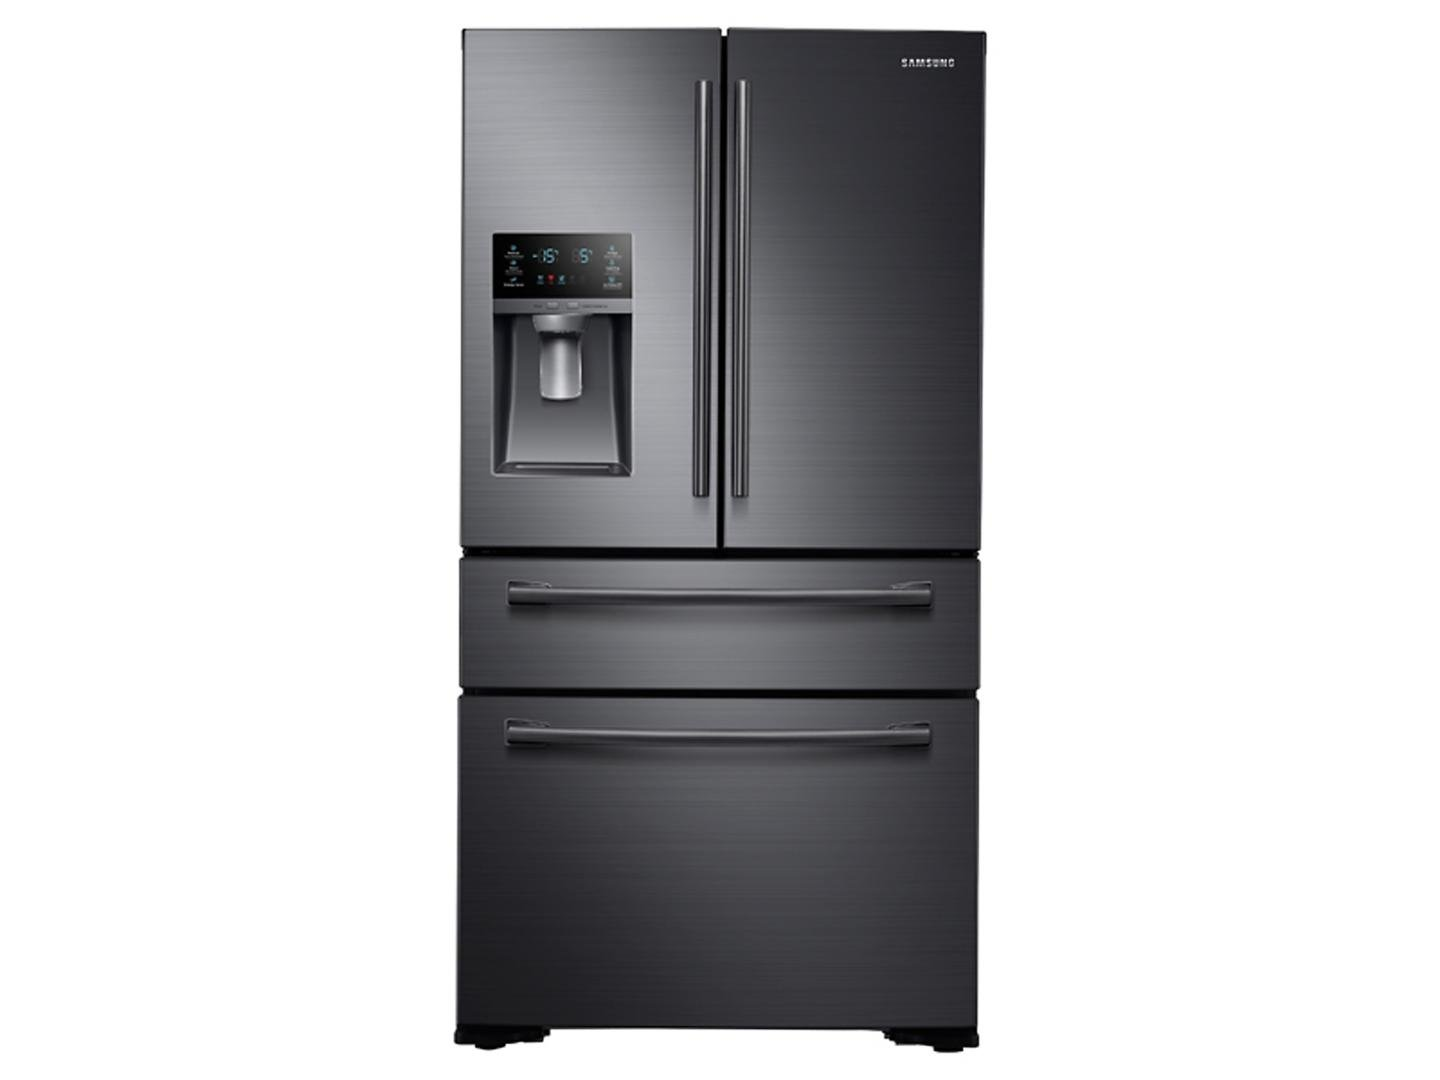 "Samsung Appliance RF30KMEDBSG 36"" French Door Refrigerator with 29.7 cu. ft. Total Capacity, in Black Stainless Steel"